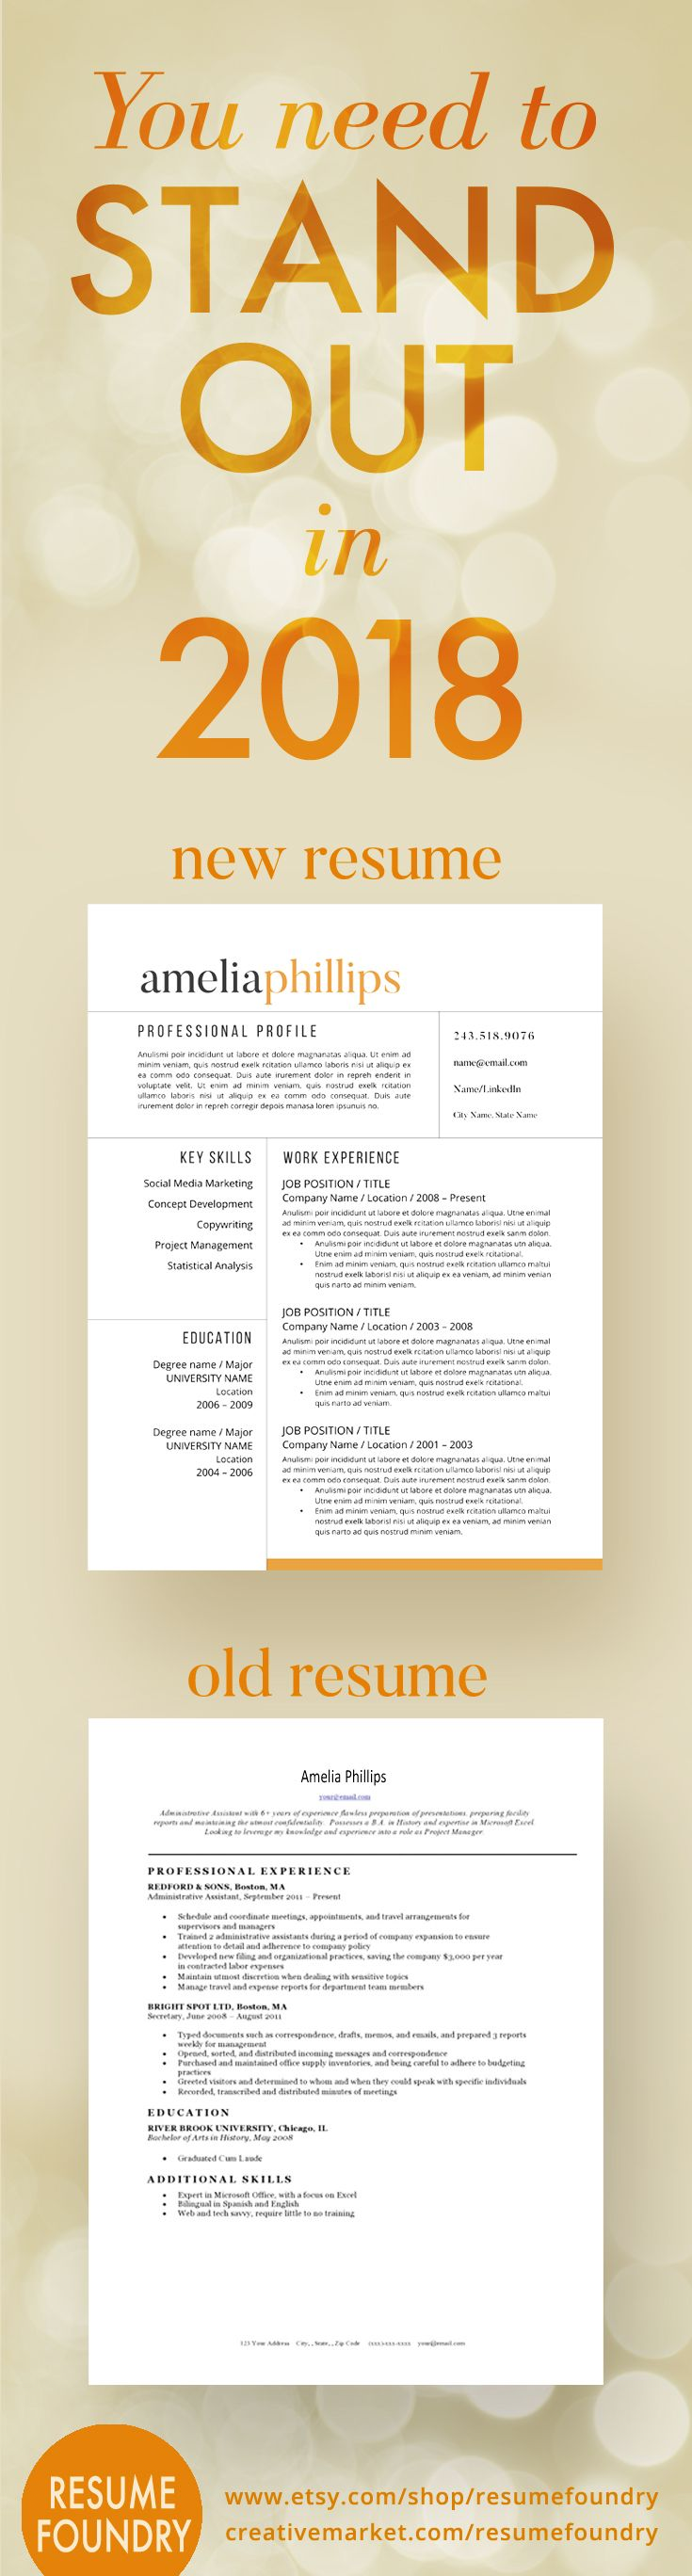 2018 Resume Templates This Resume Template Will Standout From The Sea Of Applicants